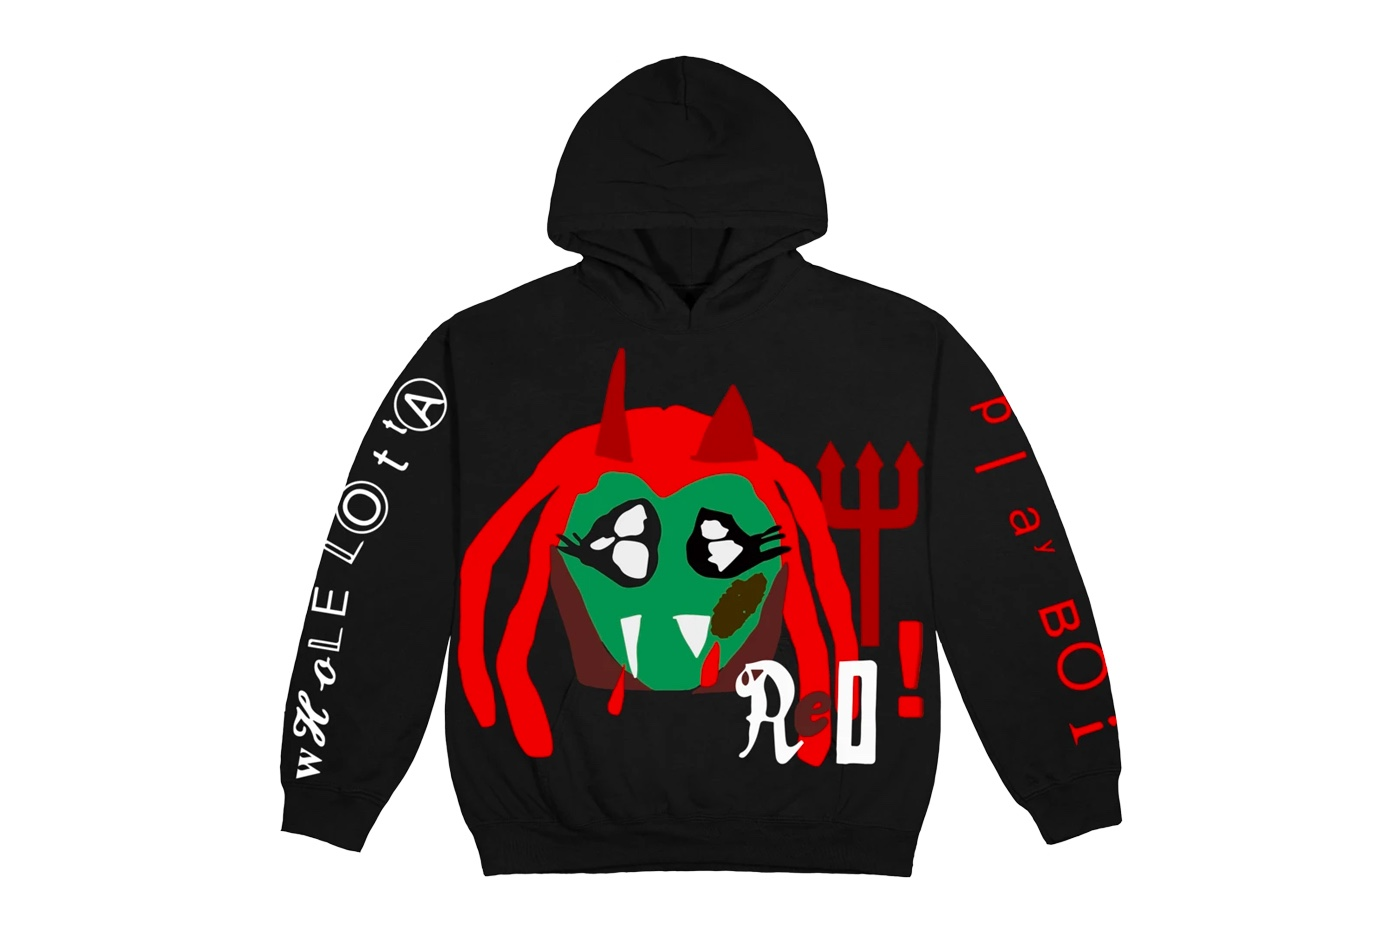 playboi-carti-cactus-plant-flea-market-whole-lotta-red hoodie